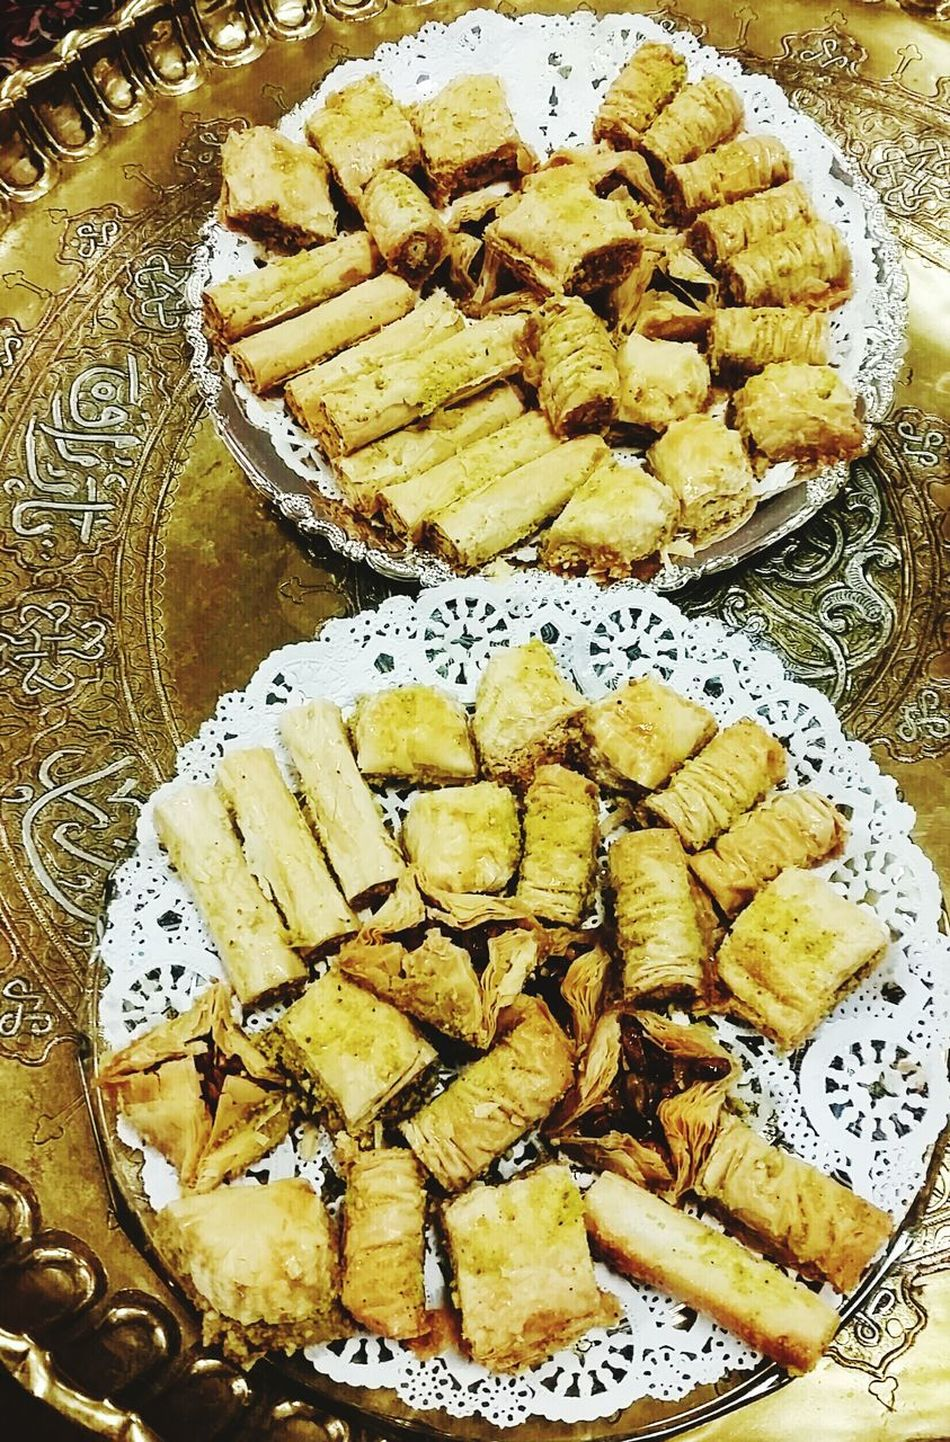 Food Food And Drink Freshness Close-up Baklava Brass Metal Tray Engraved Metal Desserts Pastries Middle Eastern Food